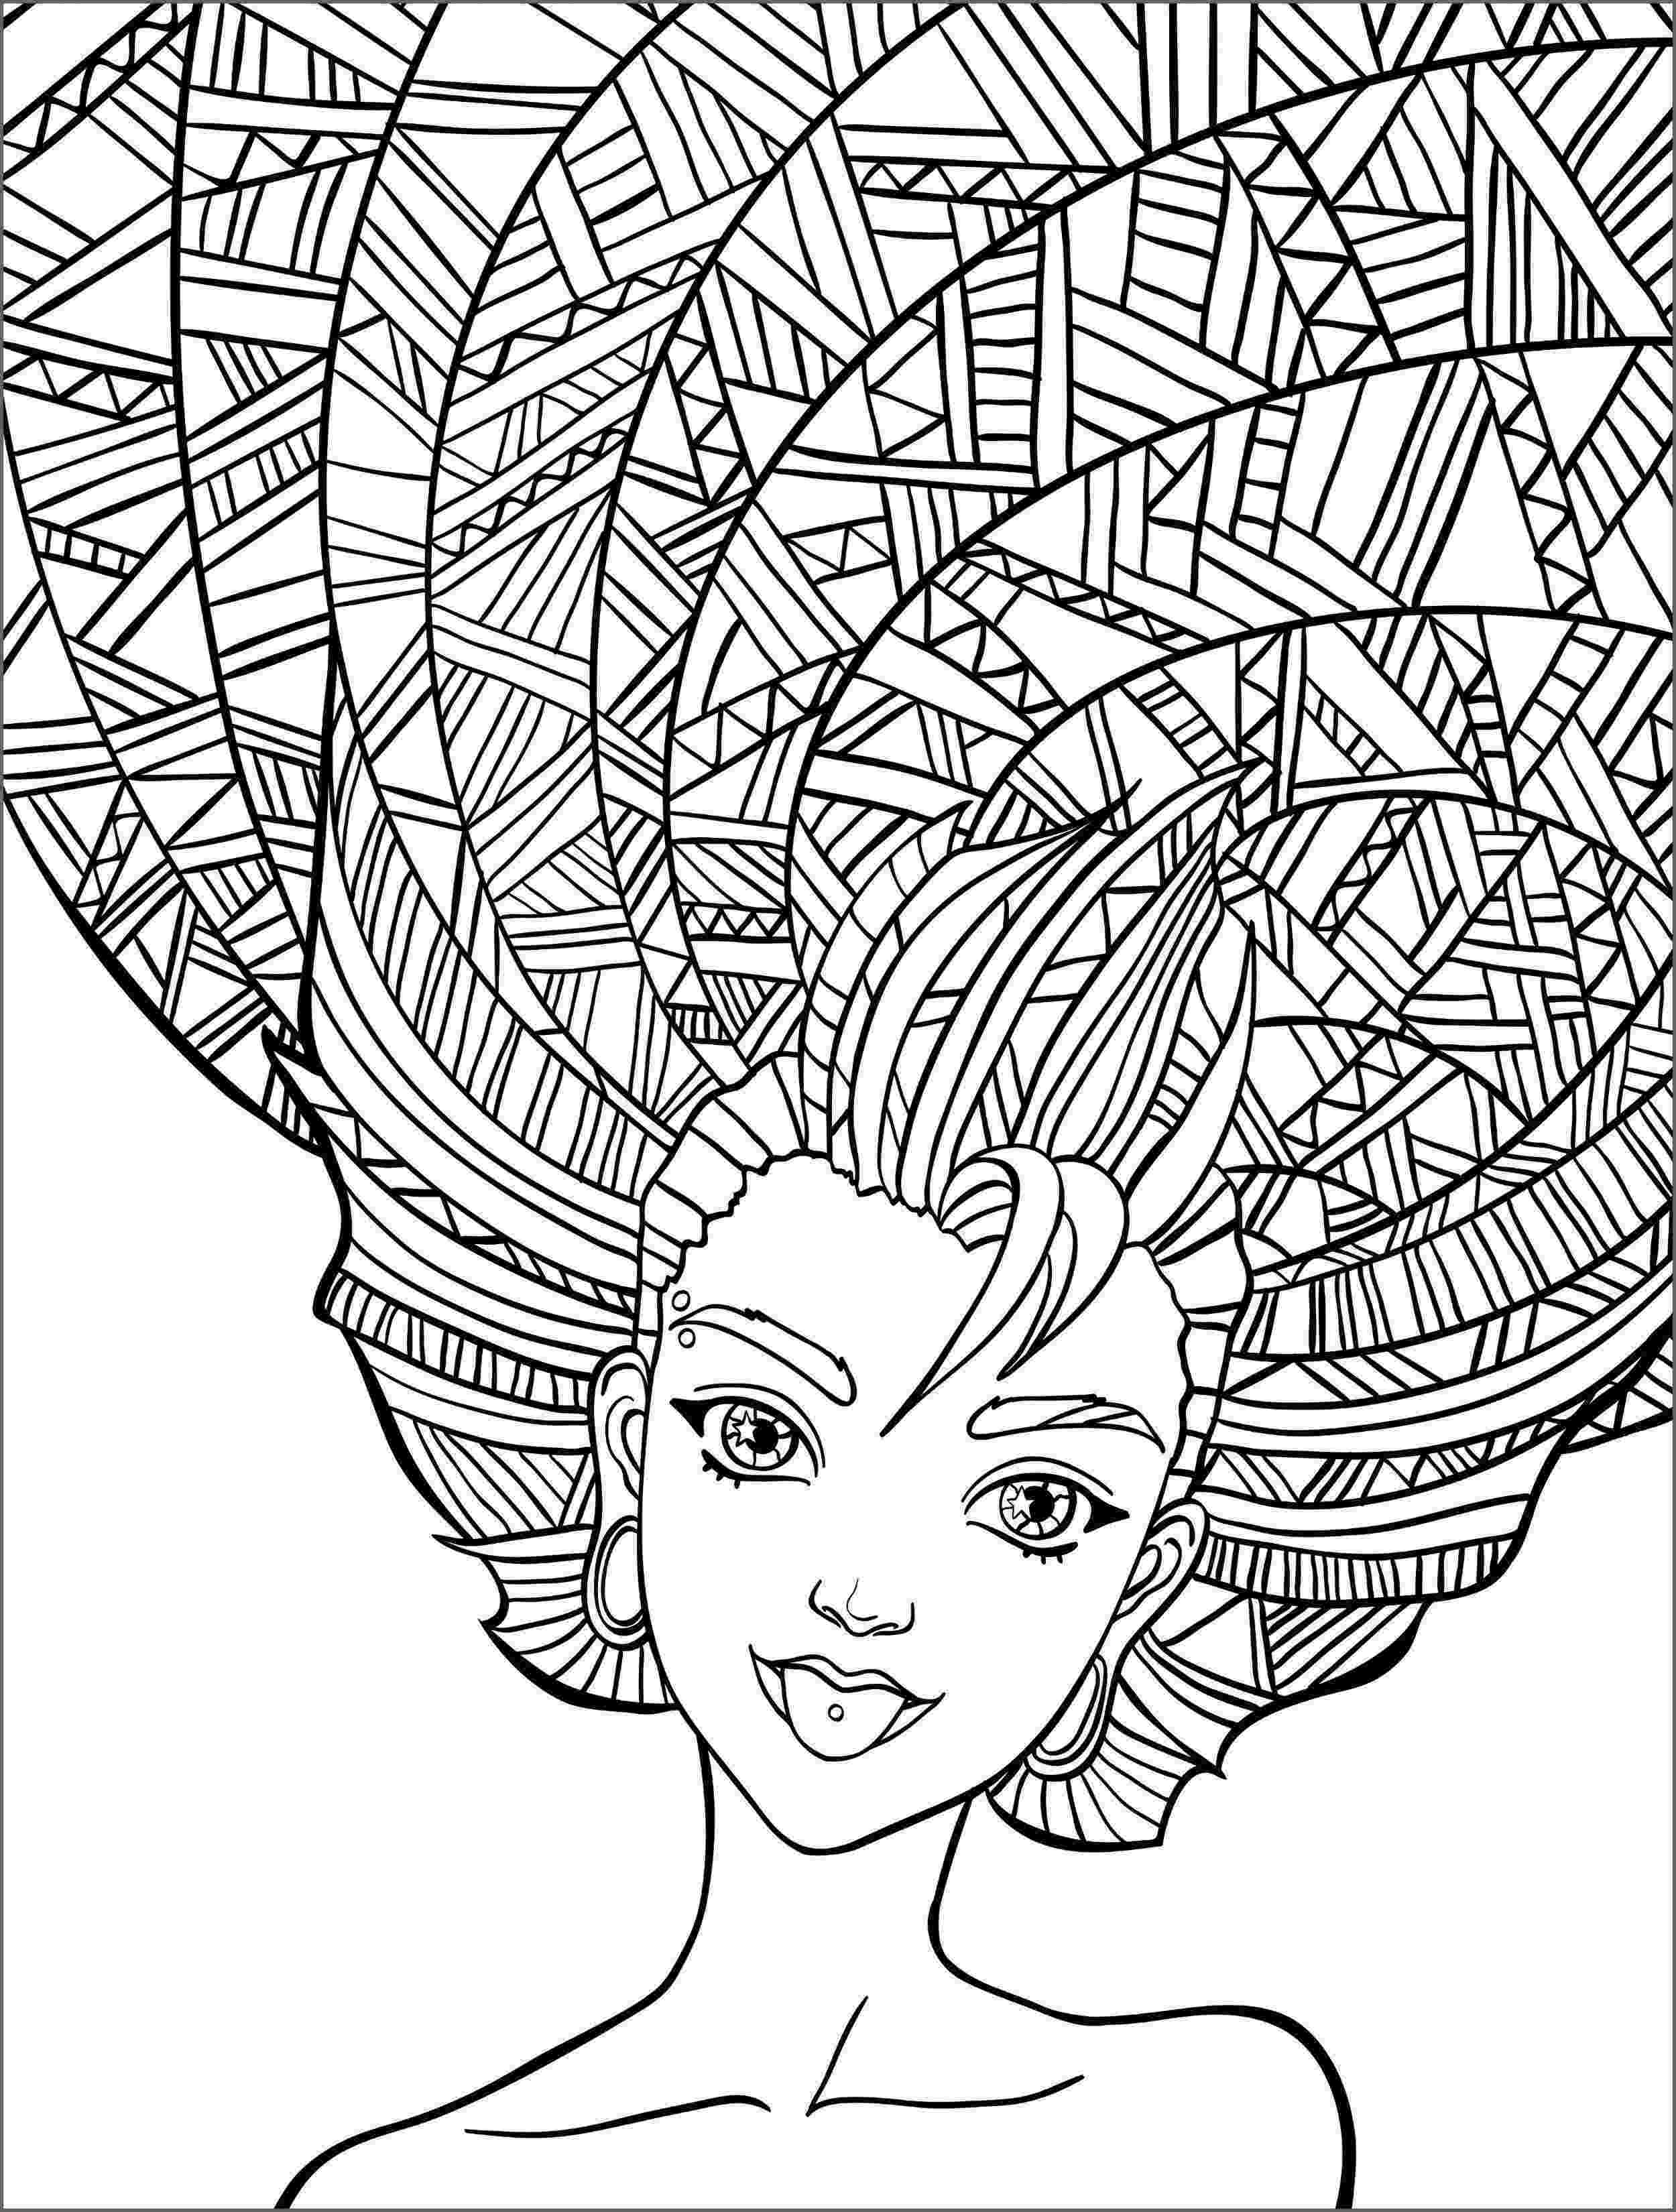 best coloring for adults android 101 best christmas coloring pages for kids adults printable adults coloring best android for